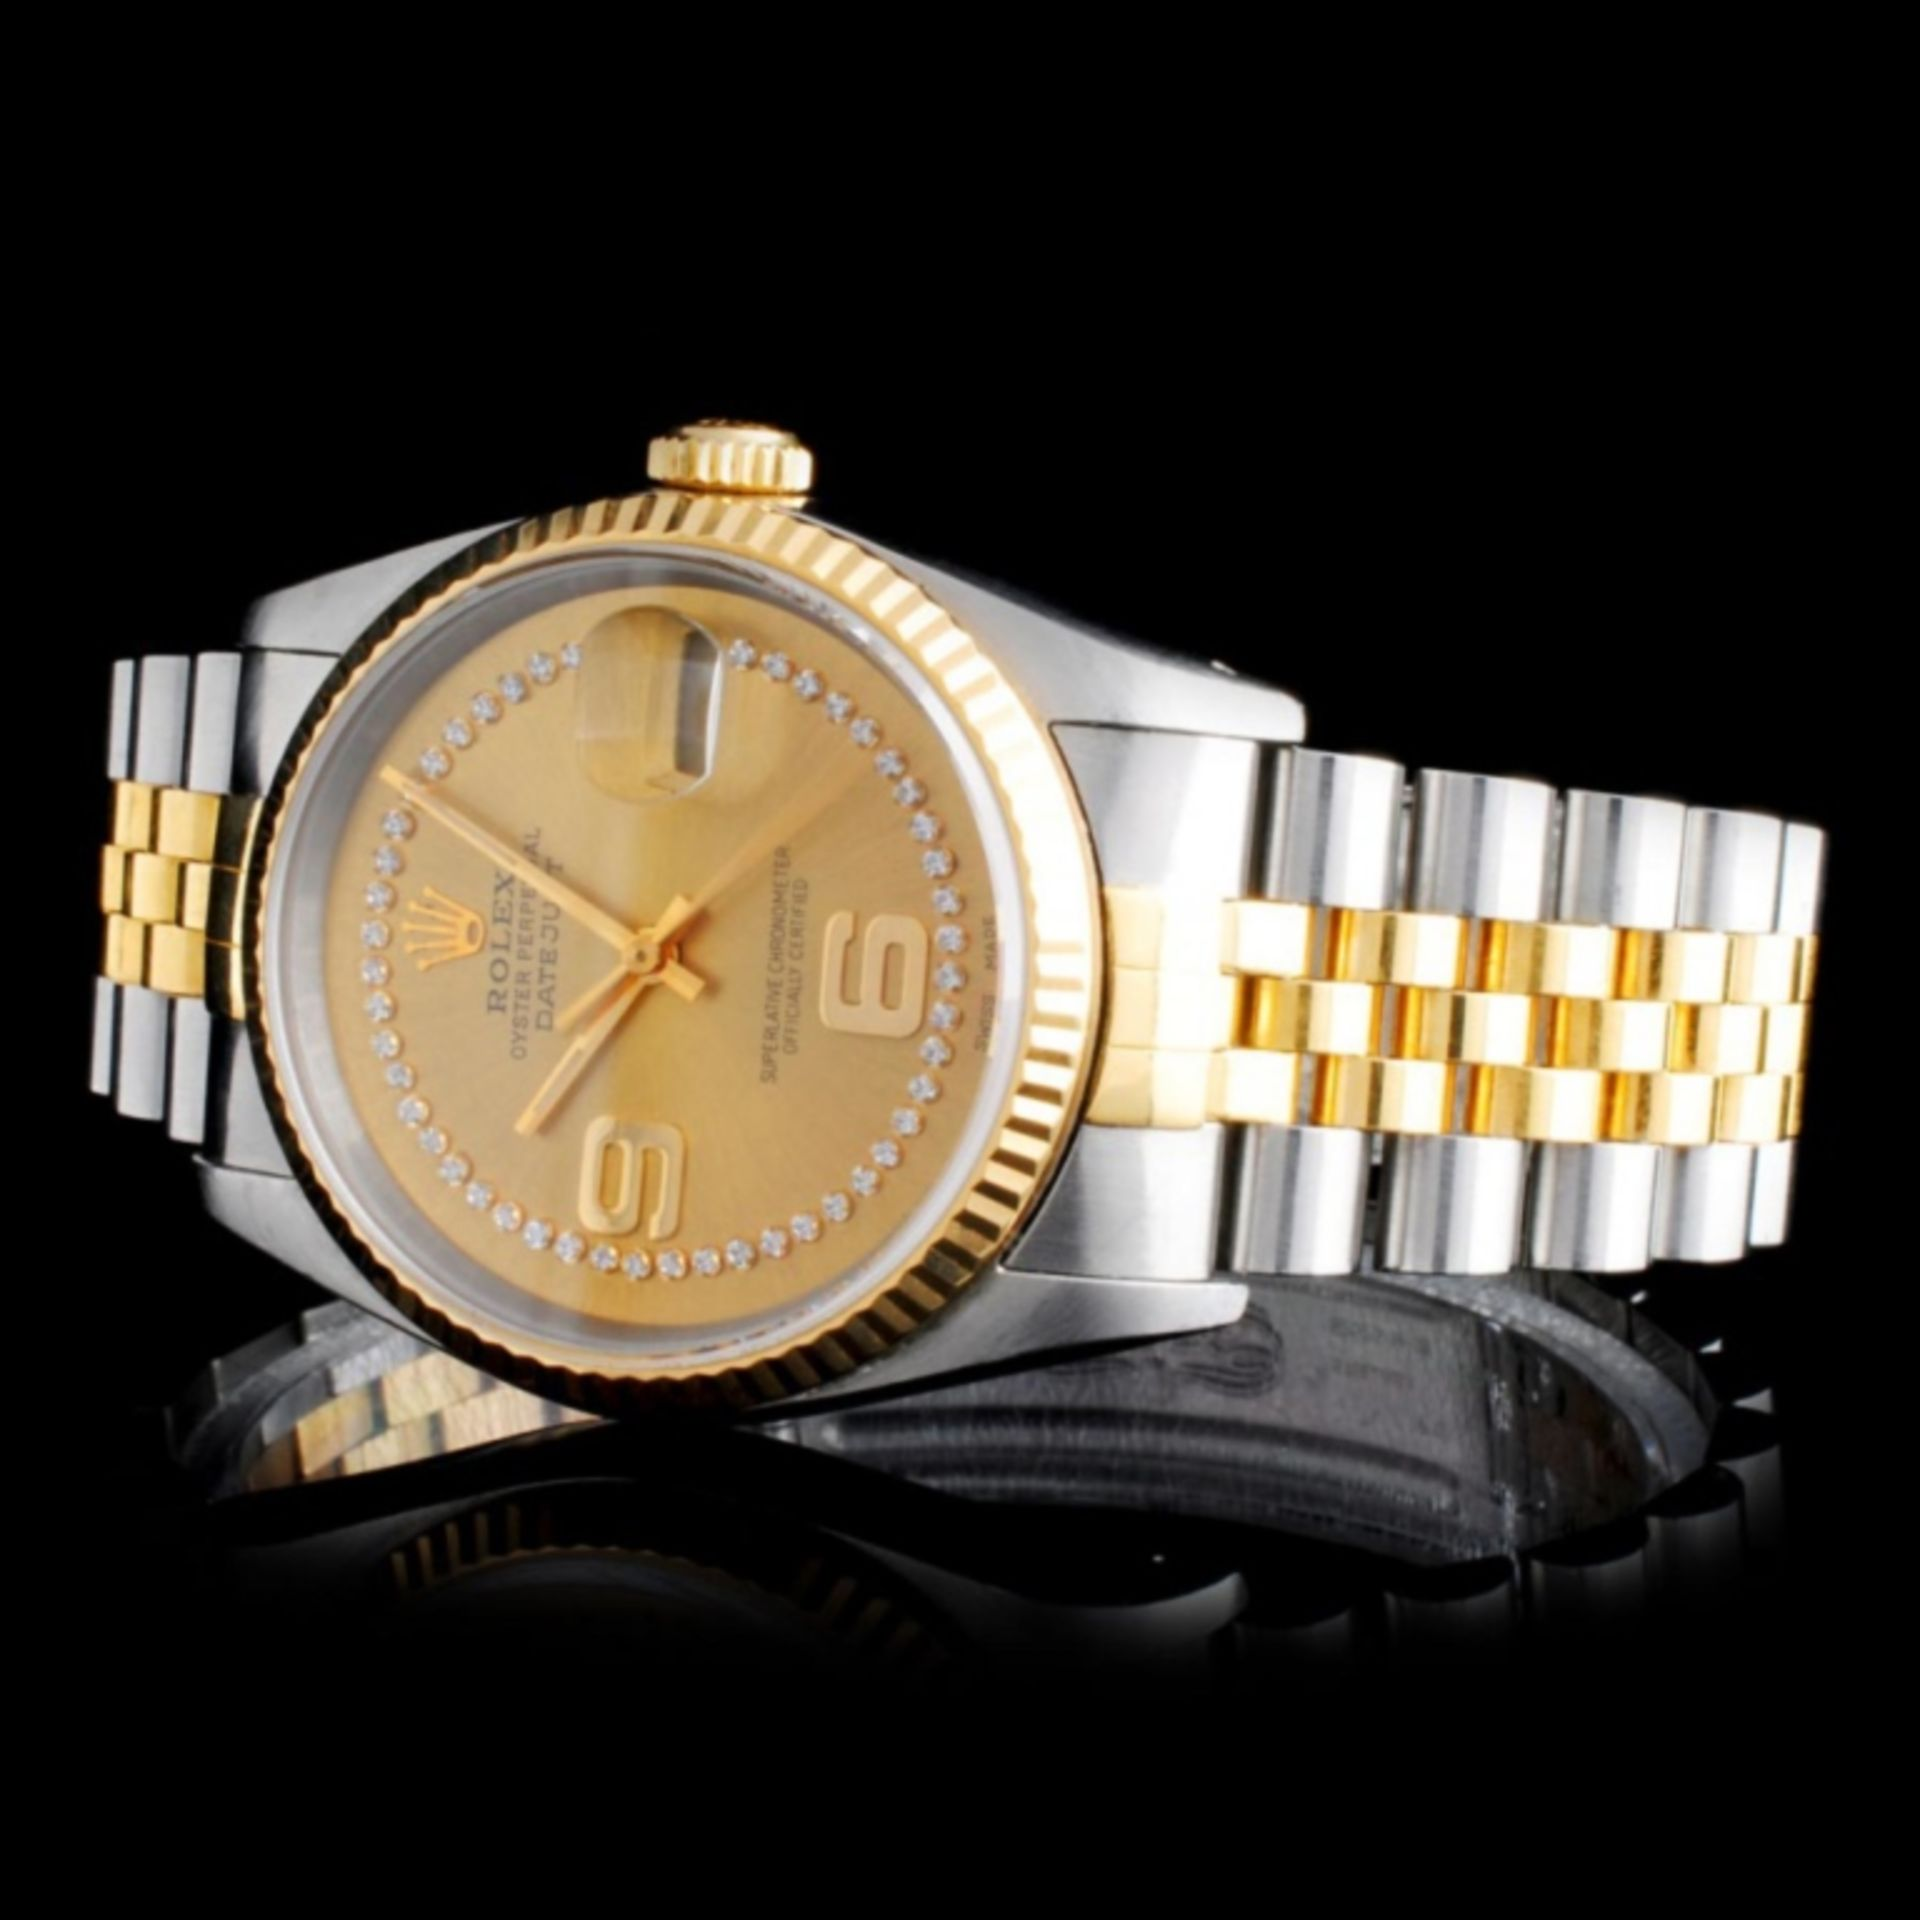 Rolex YG/SS DateJust Diamond 36MM Watch - Image 2 of 5